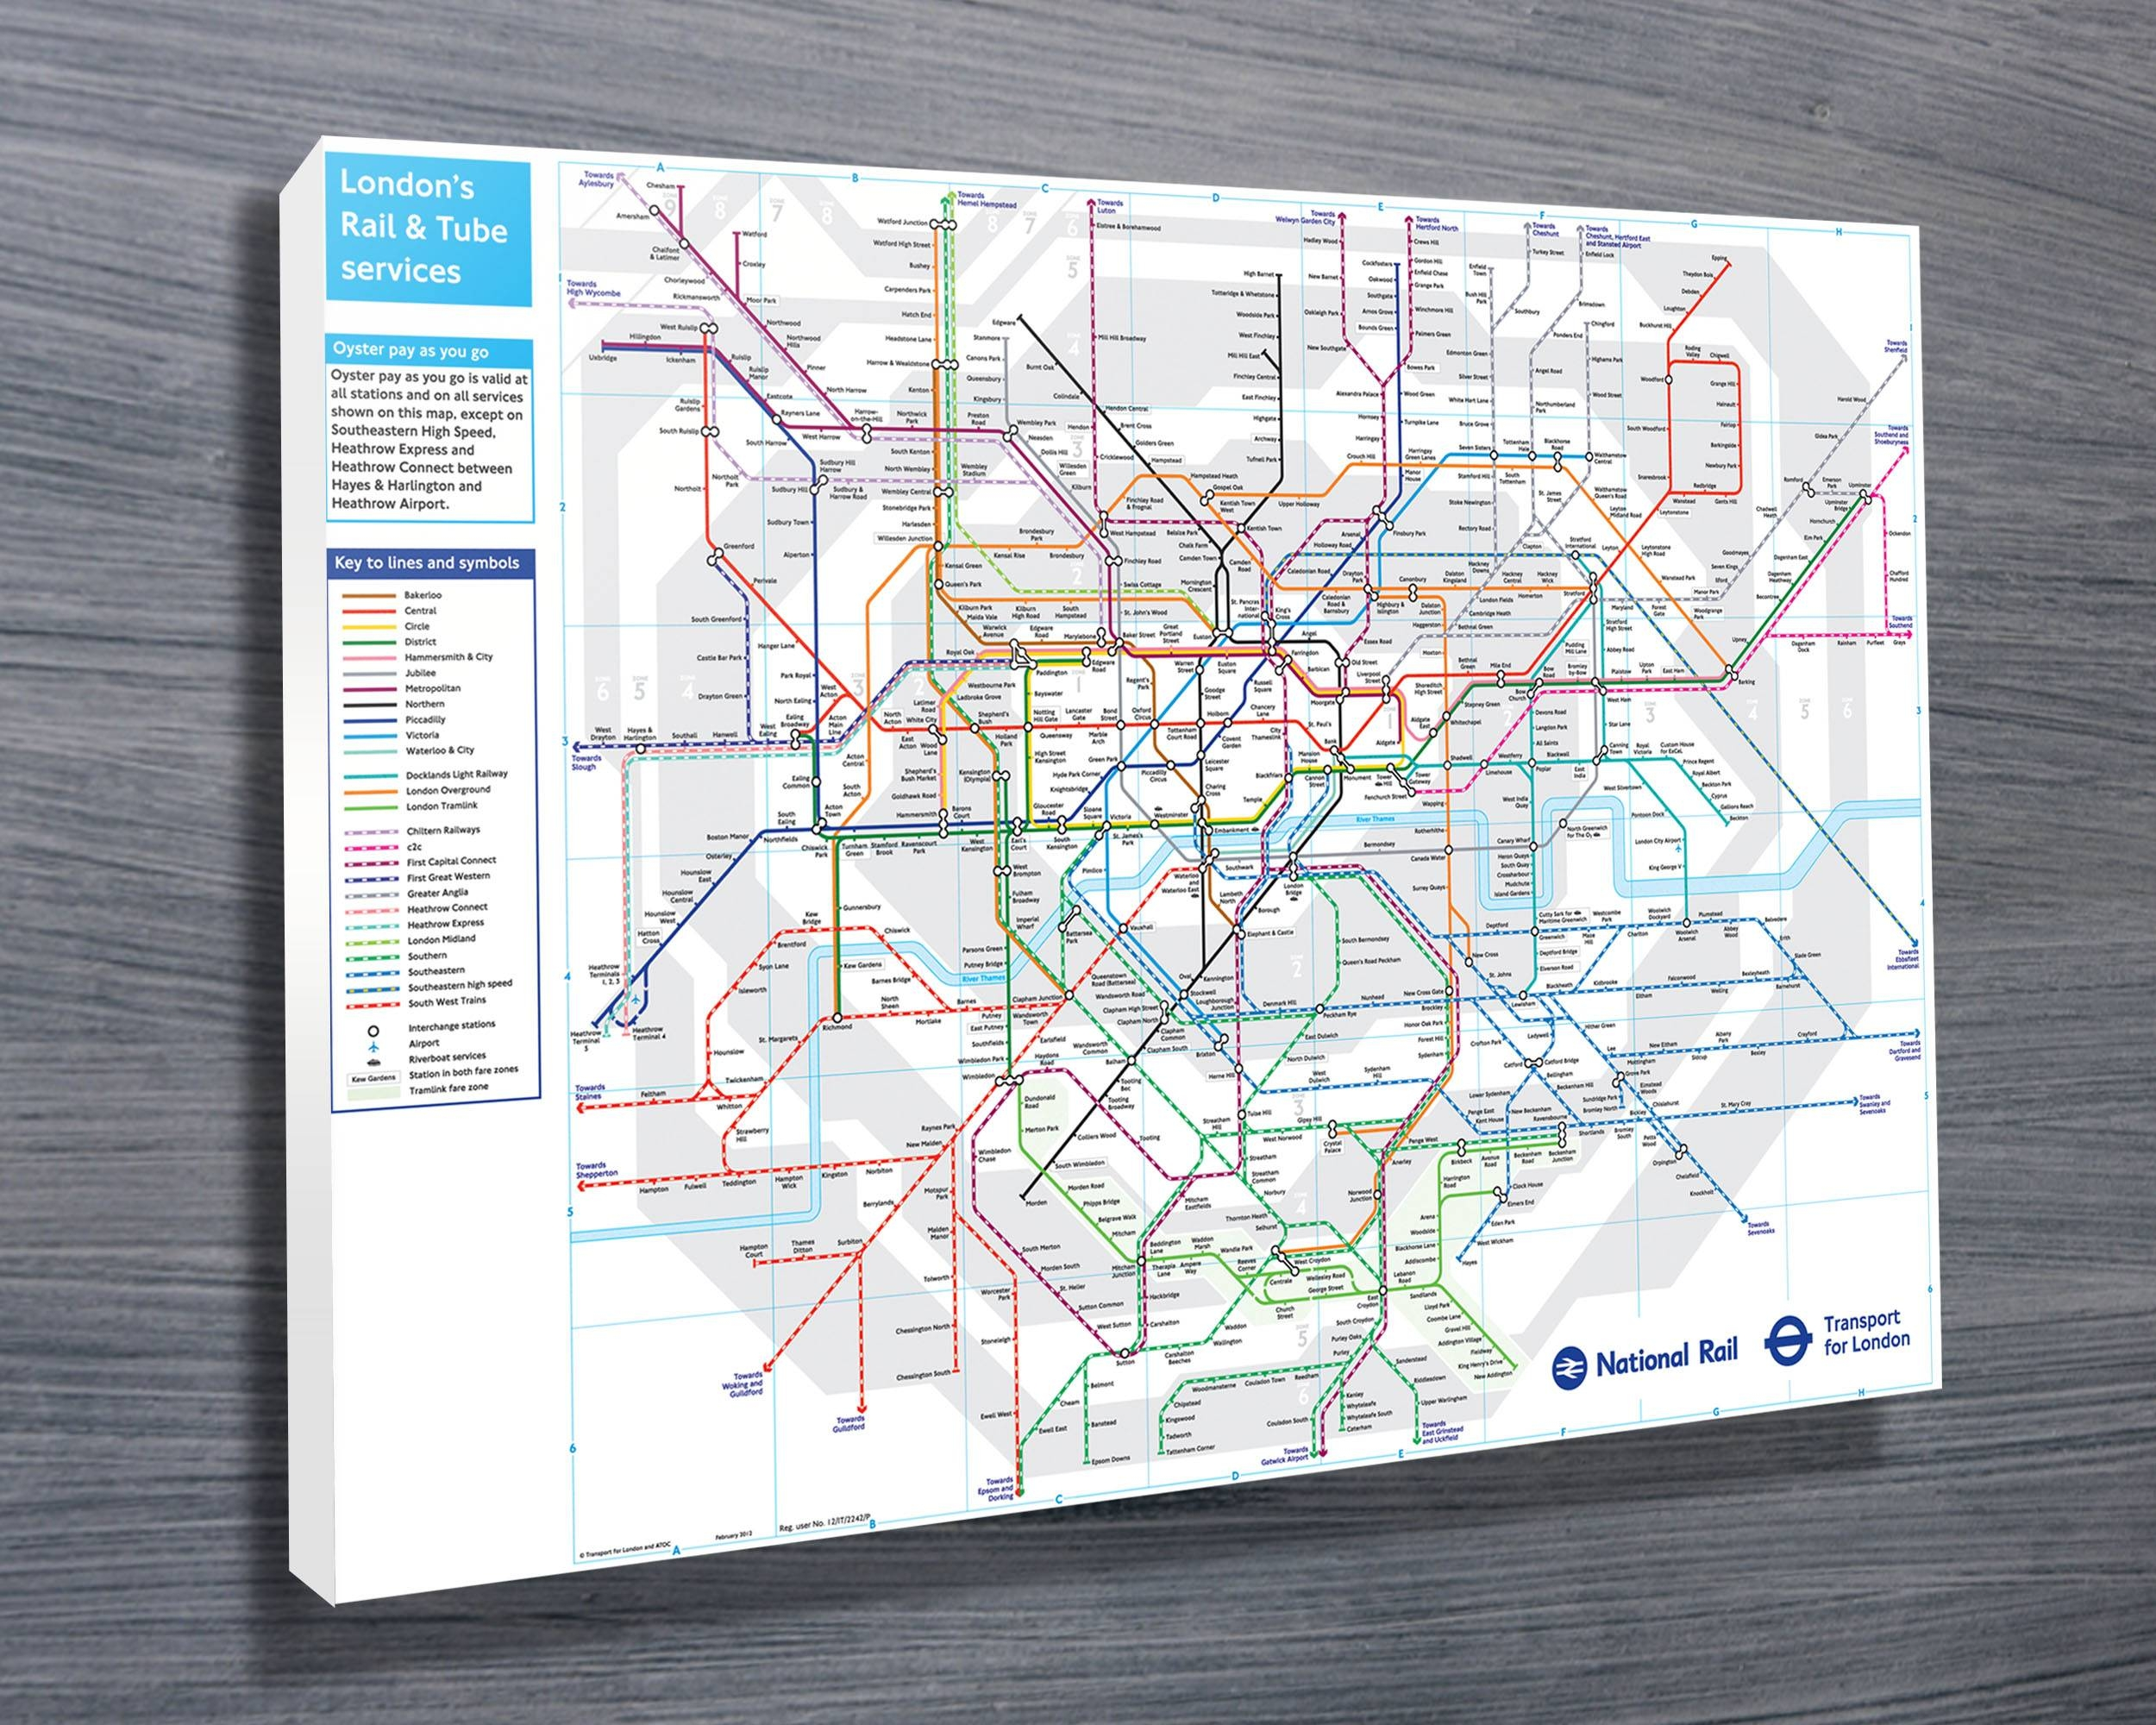 London Underground Map Wall Art – Canvas Prints Australia Intended For Most Recent London Tube Map Wall Art (View 12 of 20)